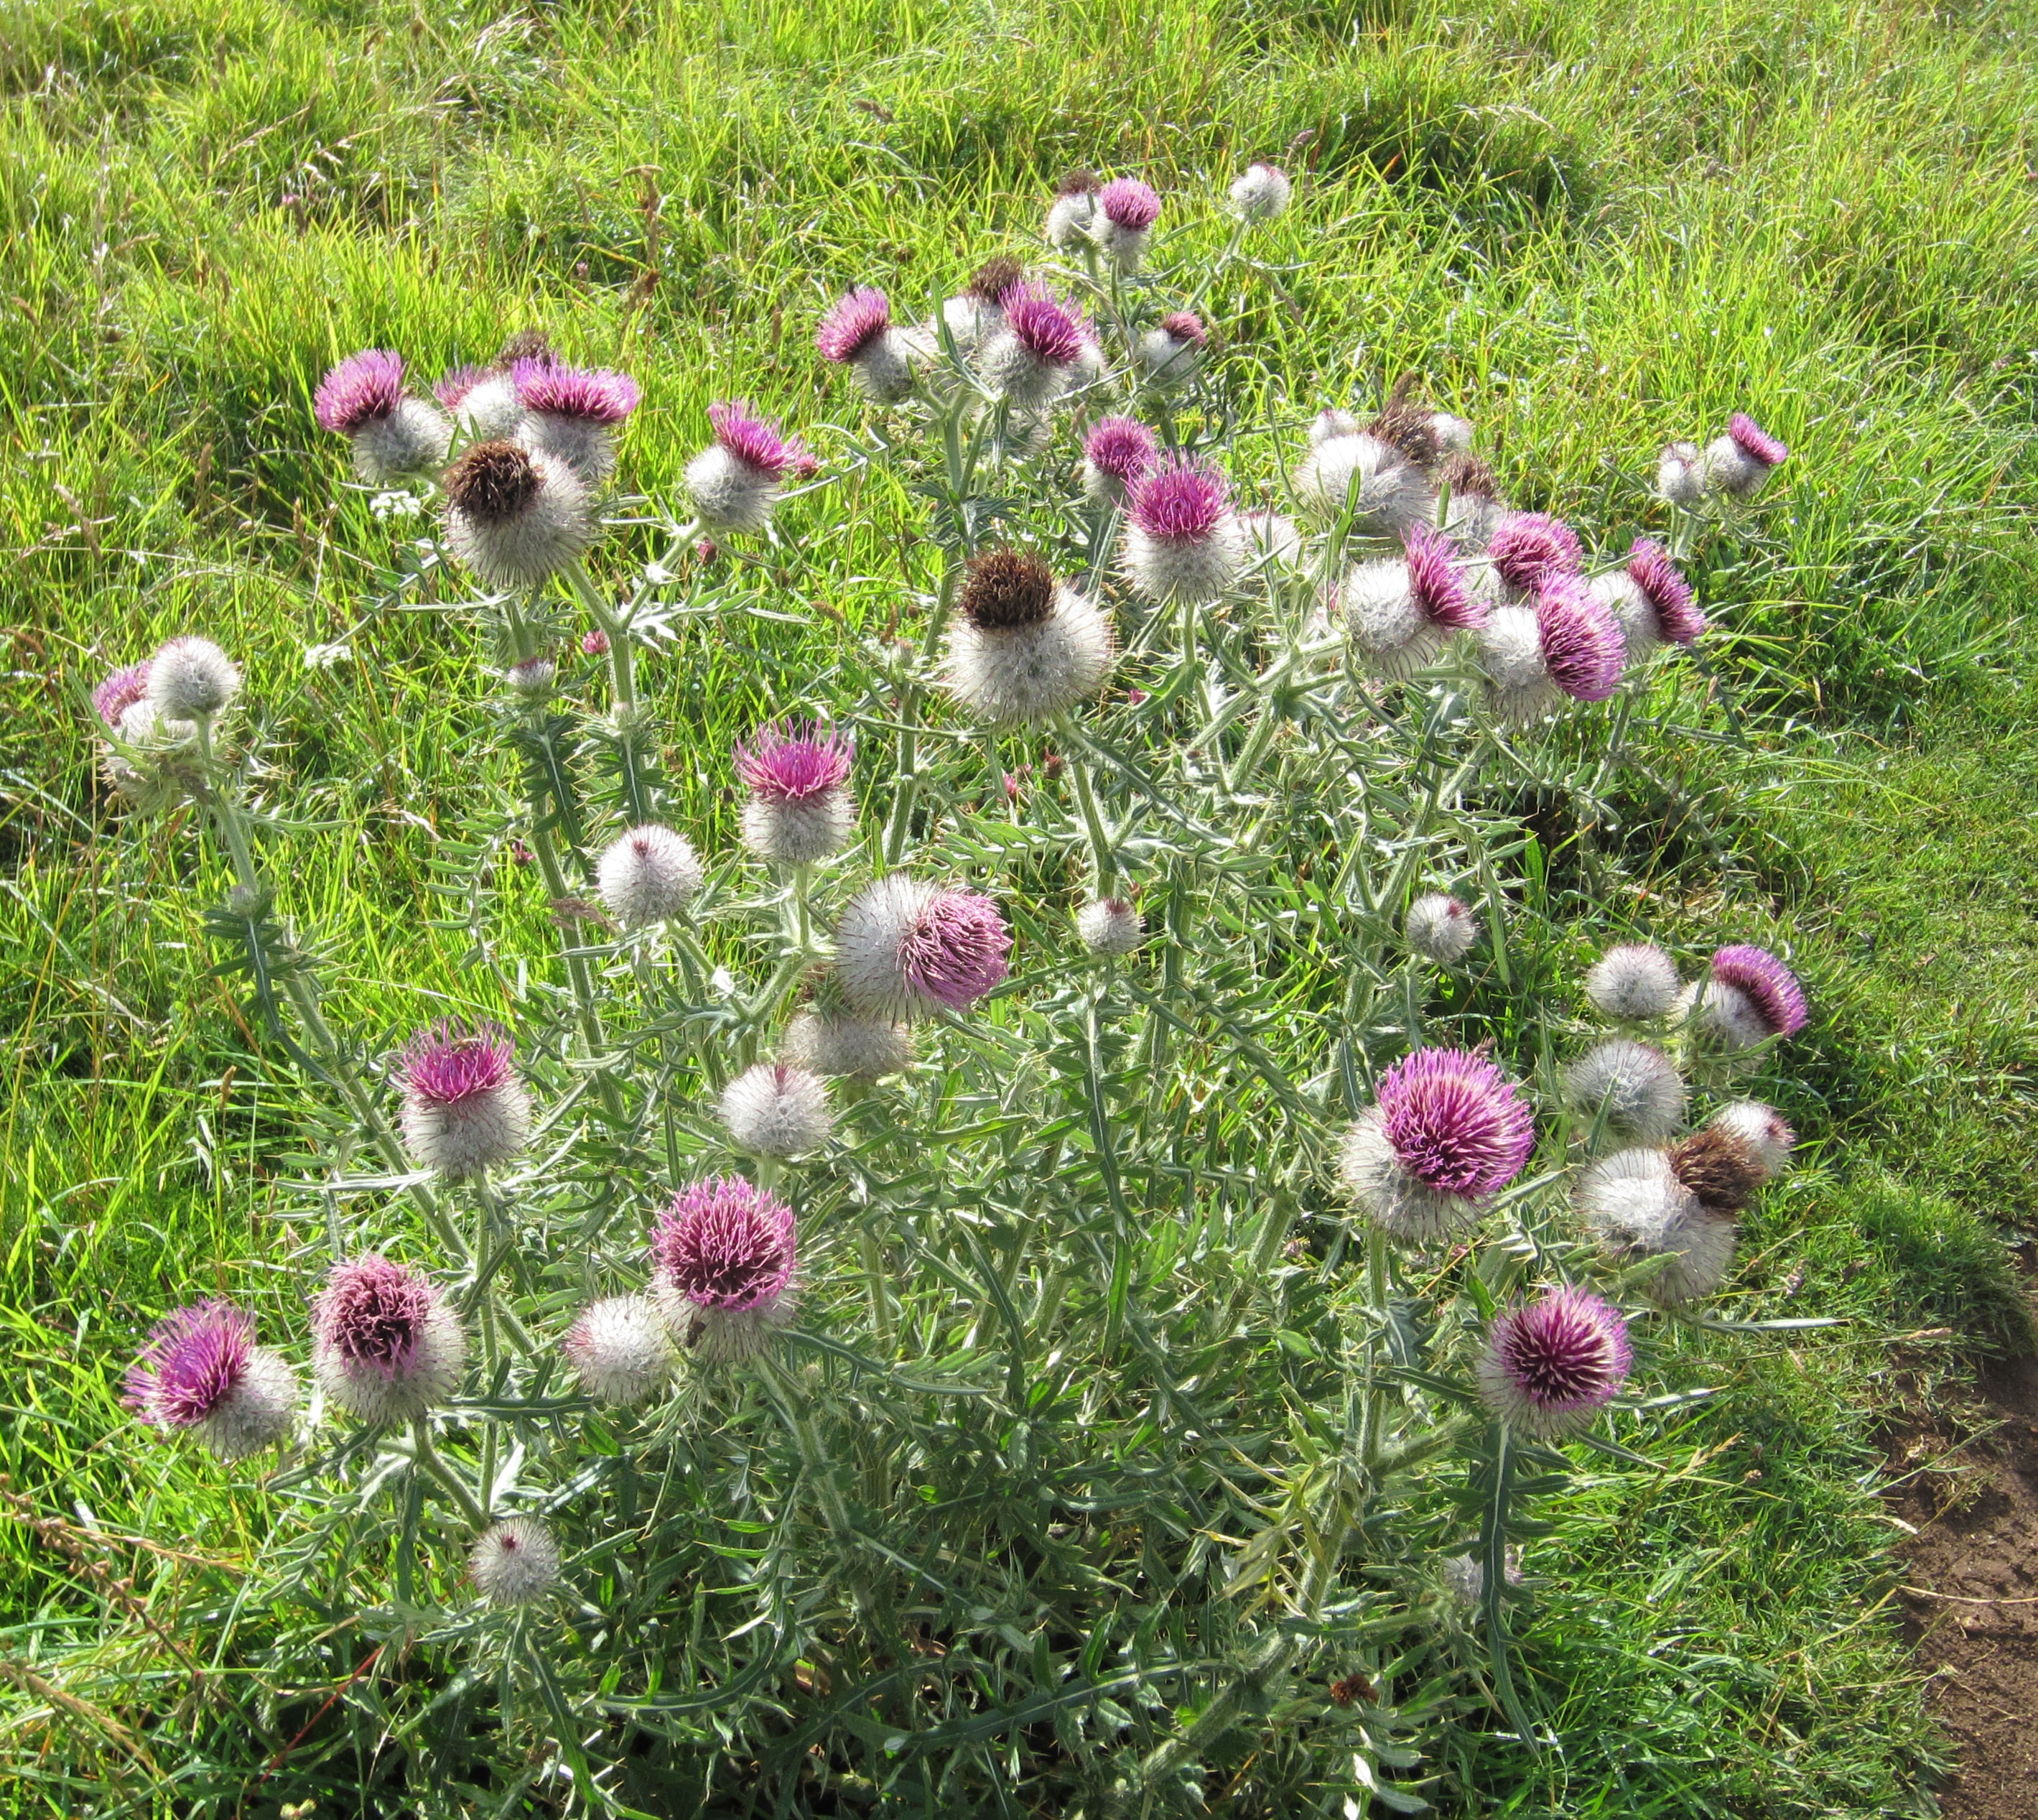 thistles and tall nettles Docks nettles thistles eeds are too tall or too dense, 'shadowing' can occur so, if w again, top them first and spray regrowth after 2-3 weeks.